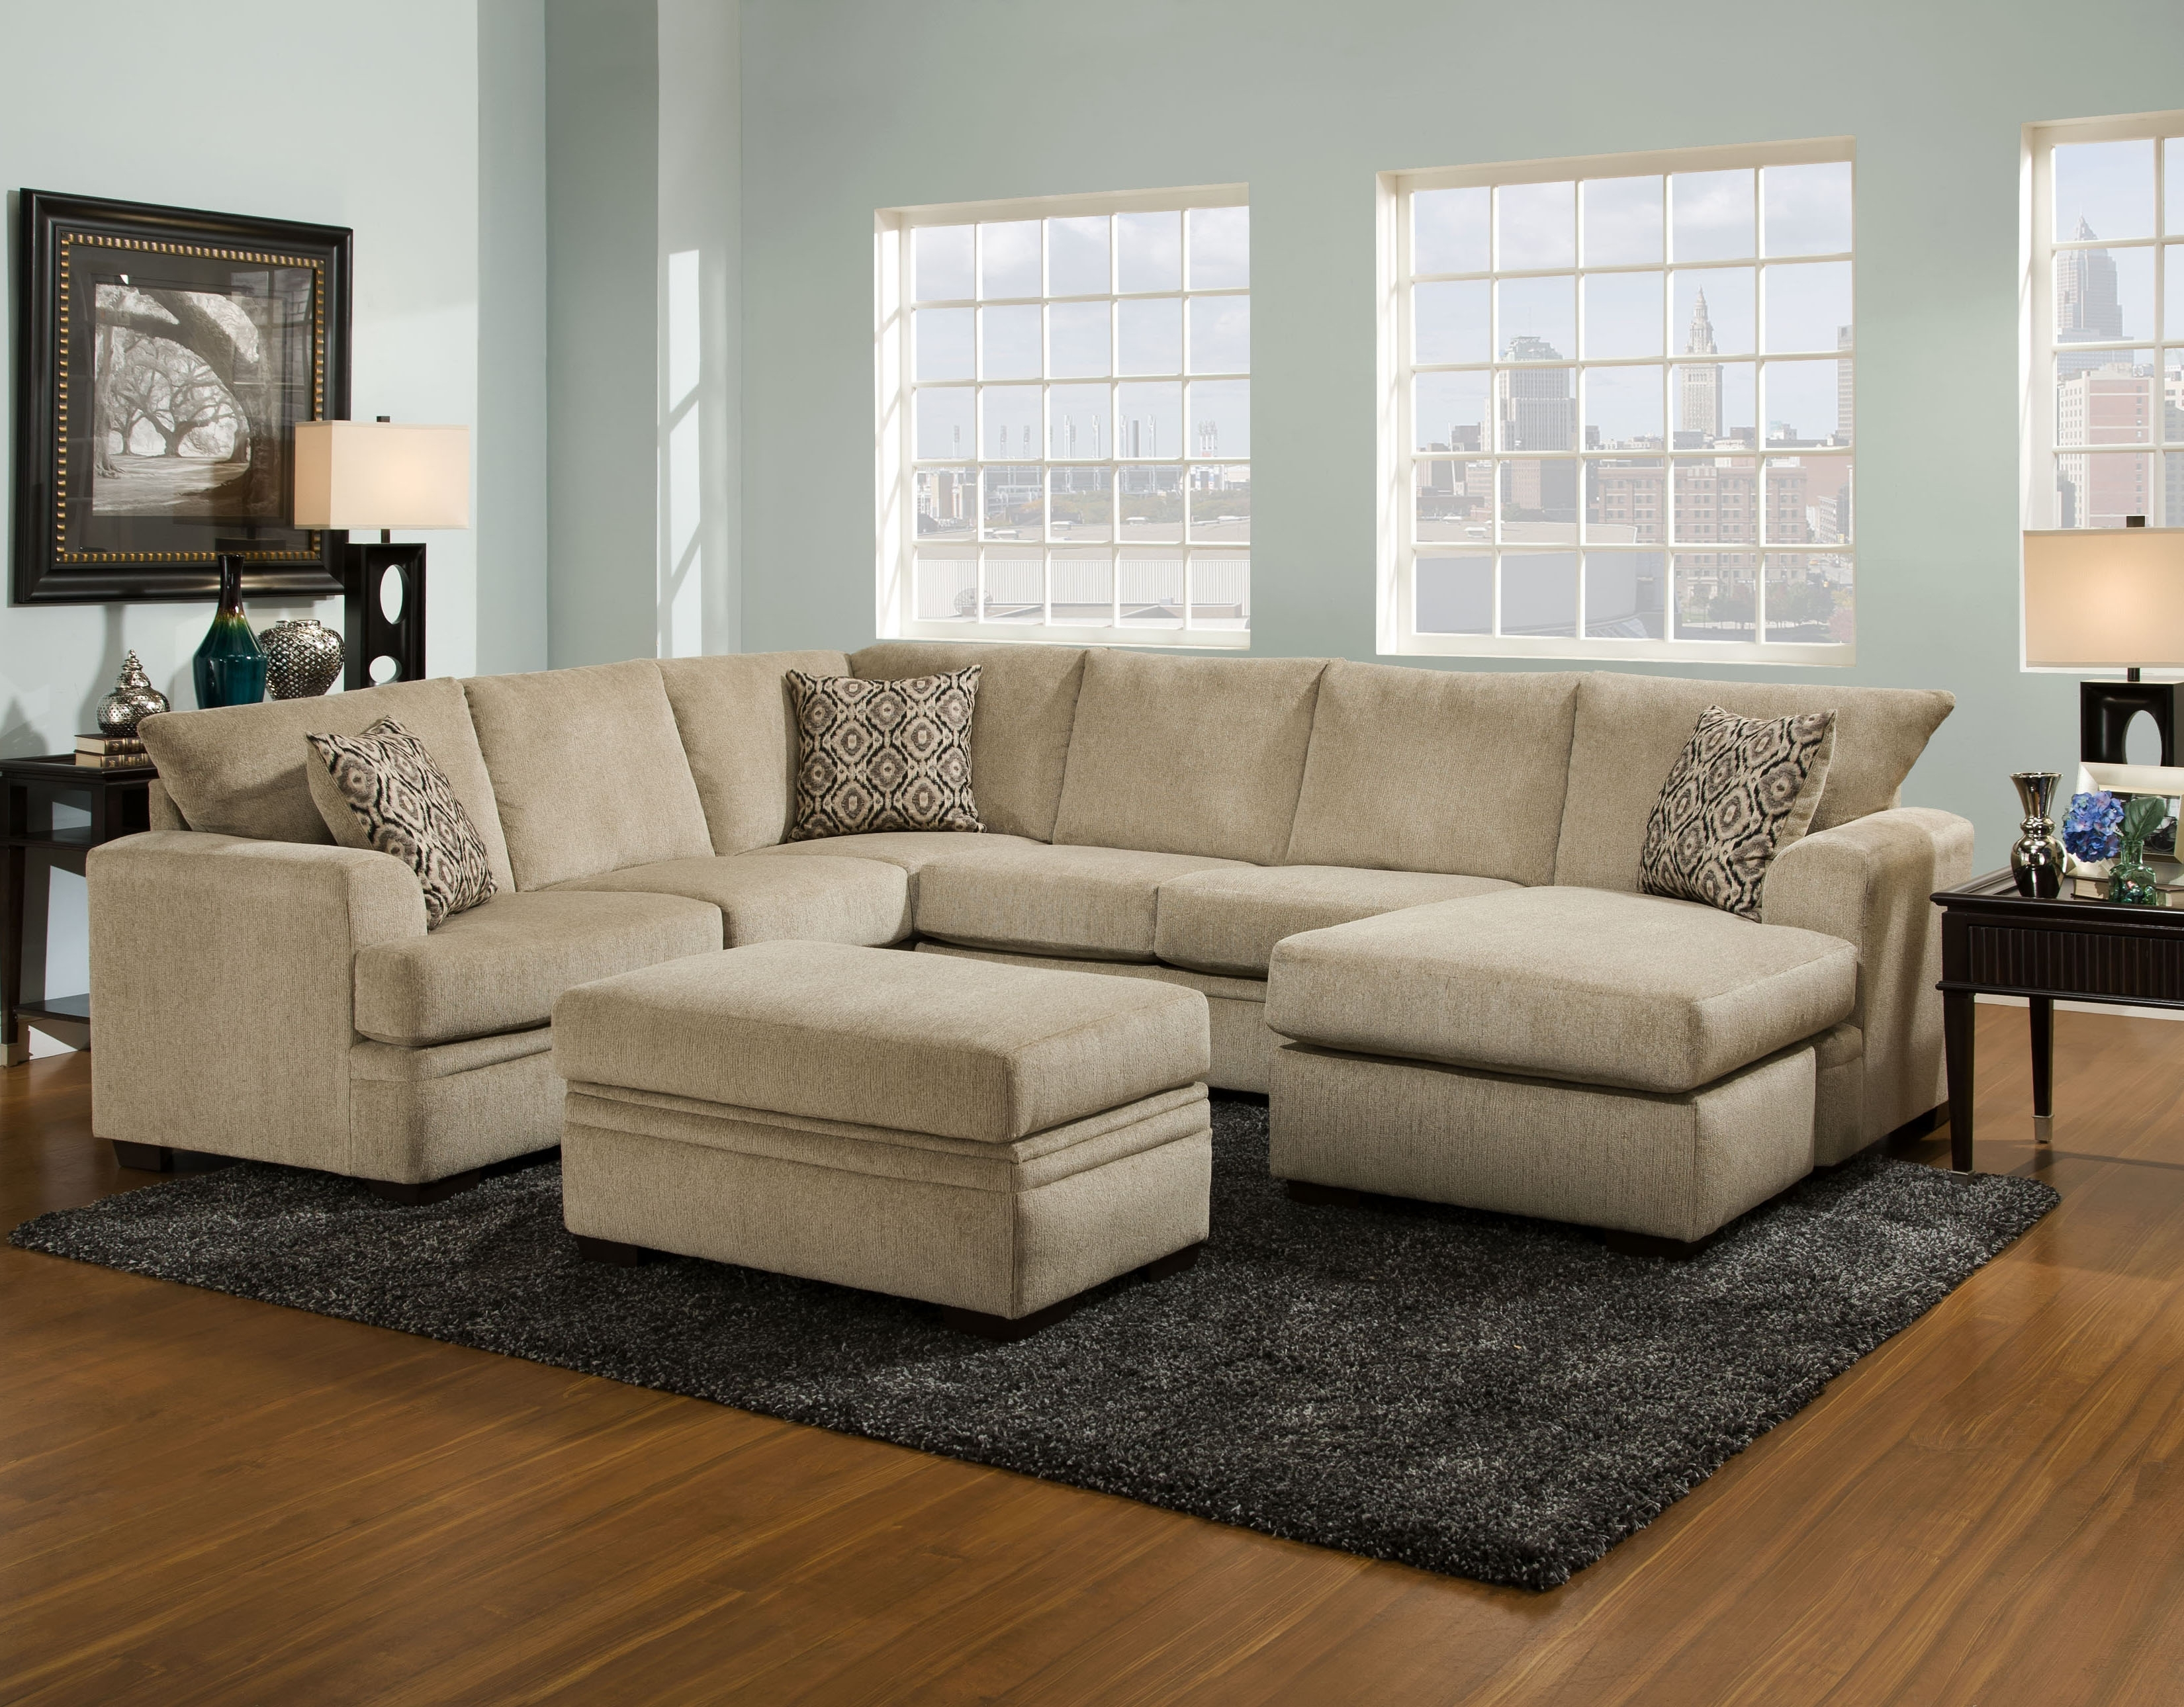 Sofa : Leather U Sectional Best Of Sofas Magnificent L Sectional Regarding Well Known Home Zone Sectional Sofas (View 14 of 15)